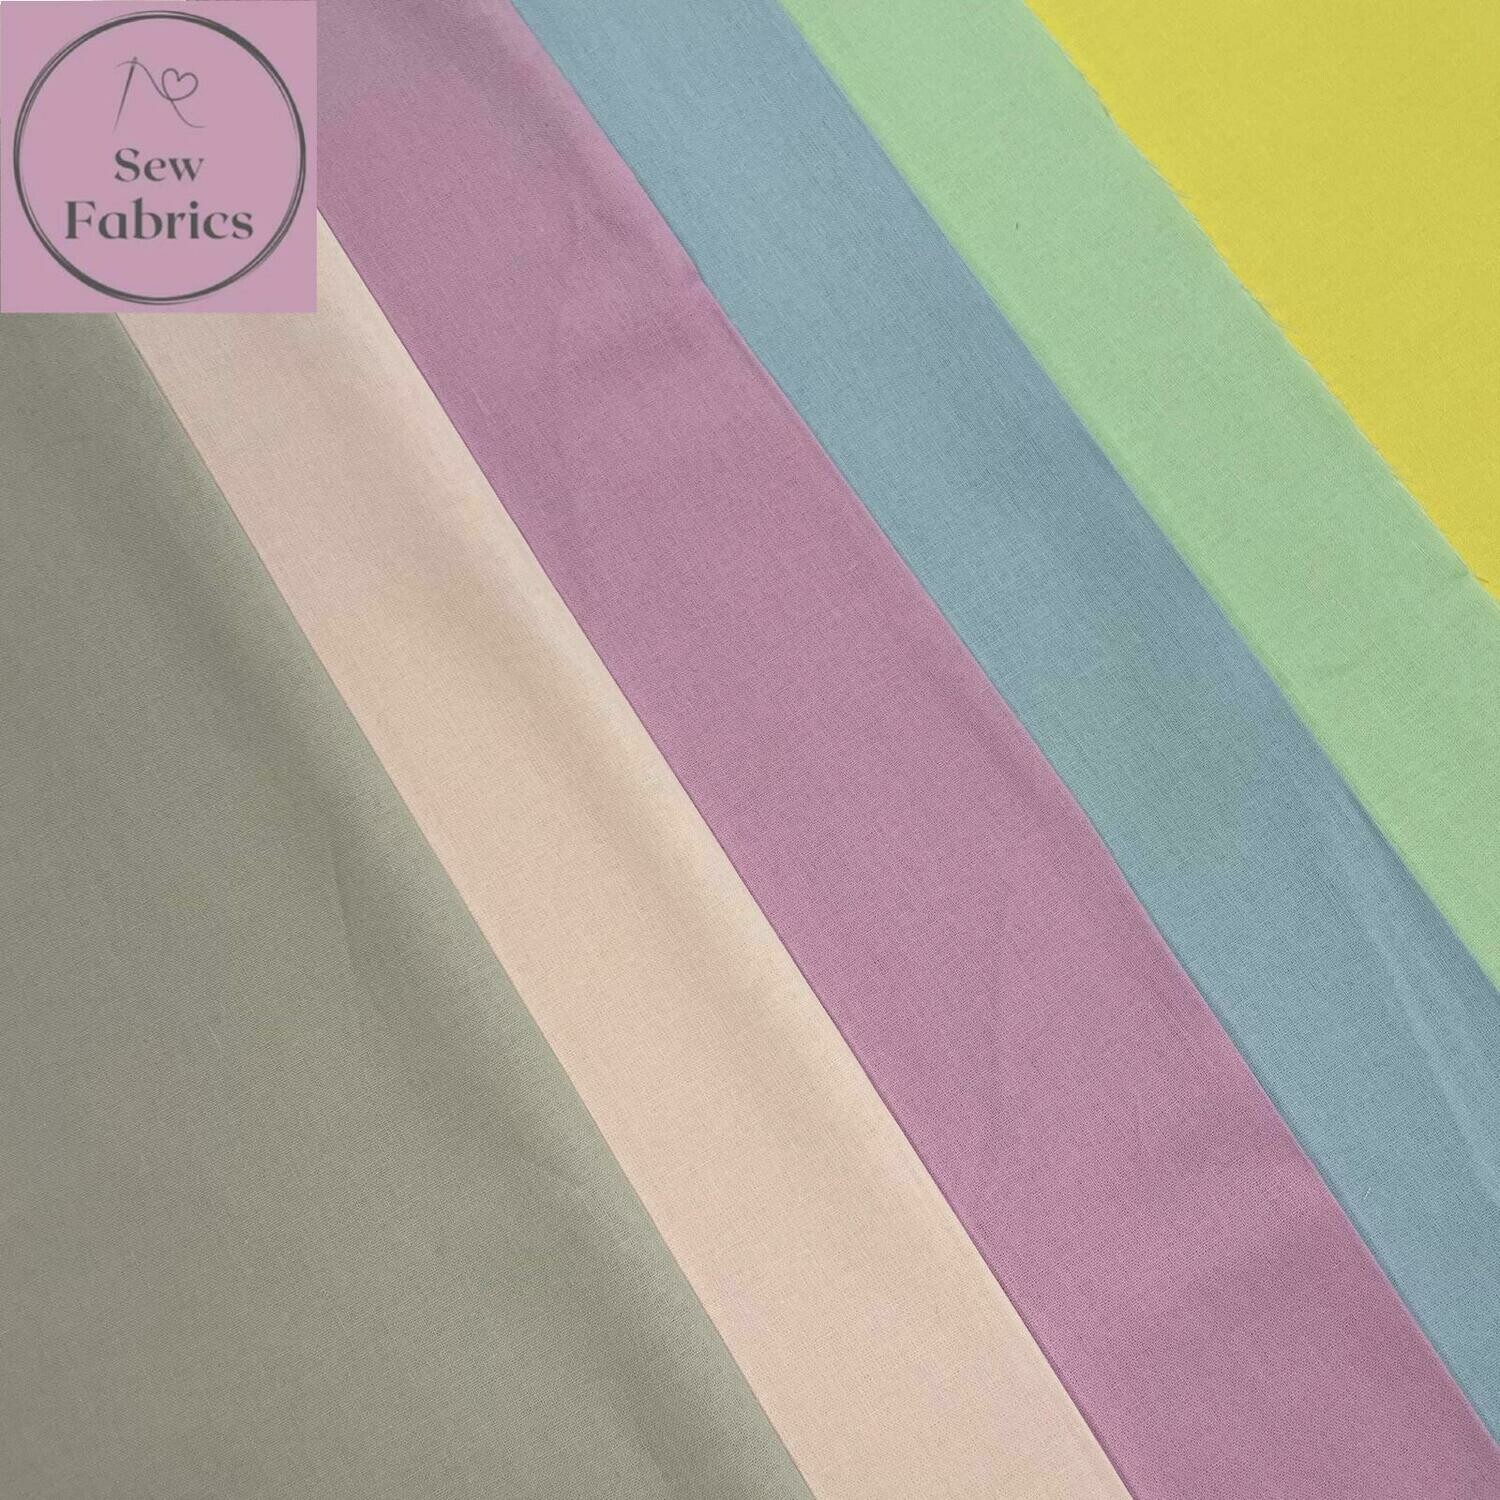 100% Craft Cotton Fabric Solid 6 Piece Fat Quarter Bundle, Pastel, Rainbow, Pink, Lilac, Blue, Green, Yellow, Grey